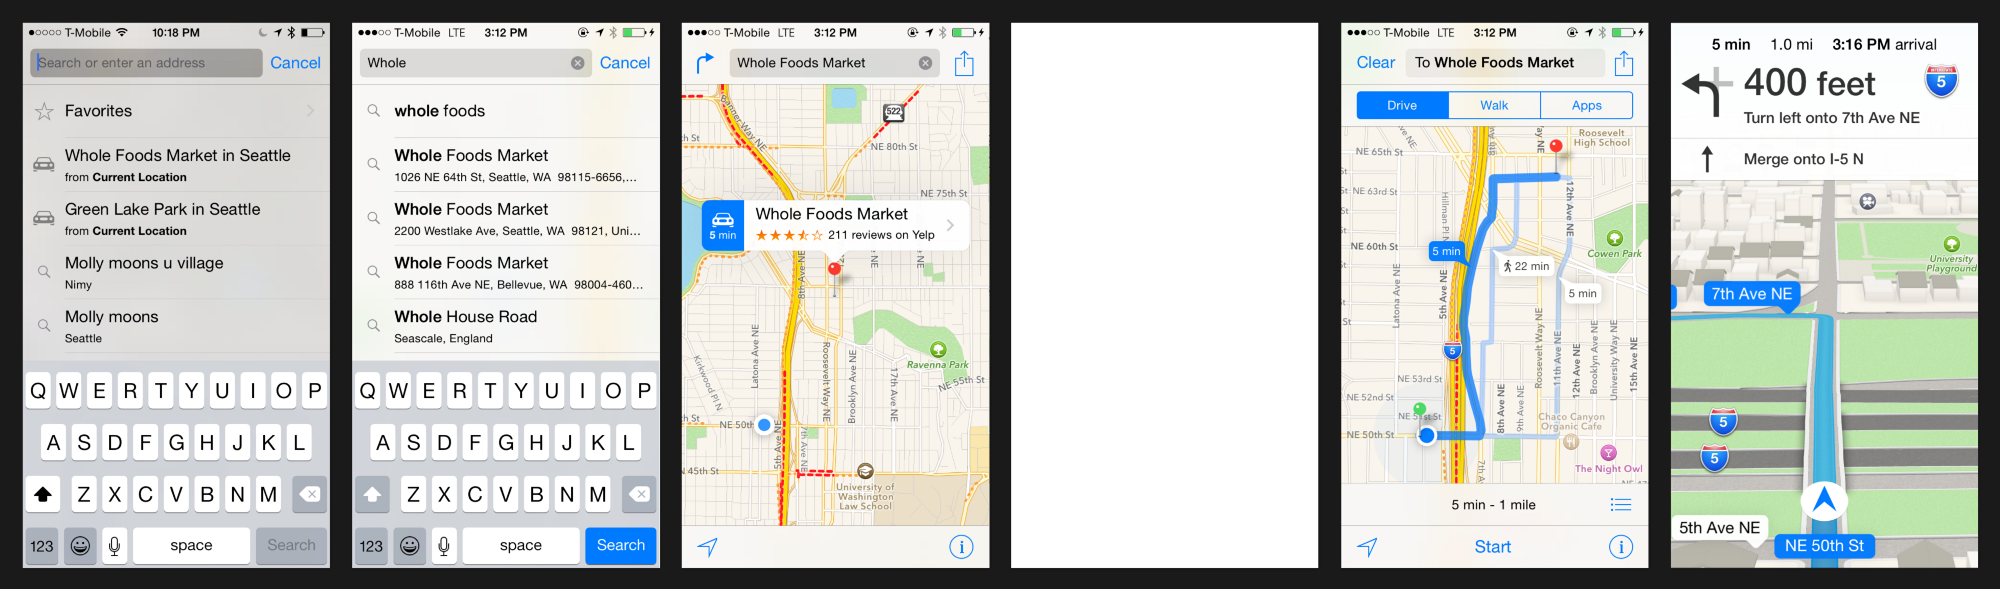 Apple Maps Flow Real Screen